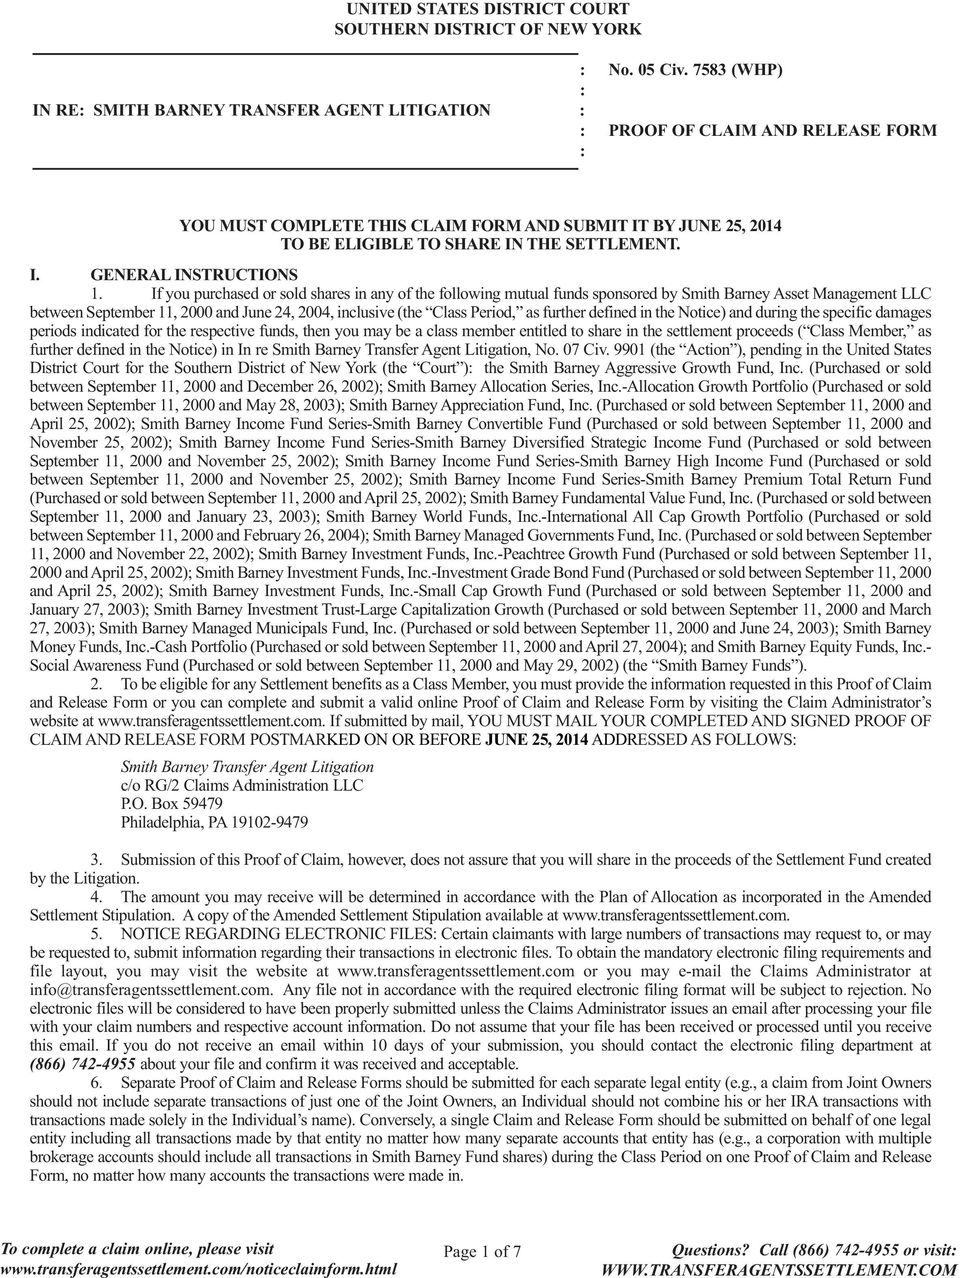 Asset Management LLC between September 11, 2000 and June 24, 2004, inclusive (the Class Period, as further defined in the Notice) and during the specific damages periods indicated for the respective